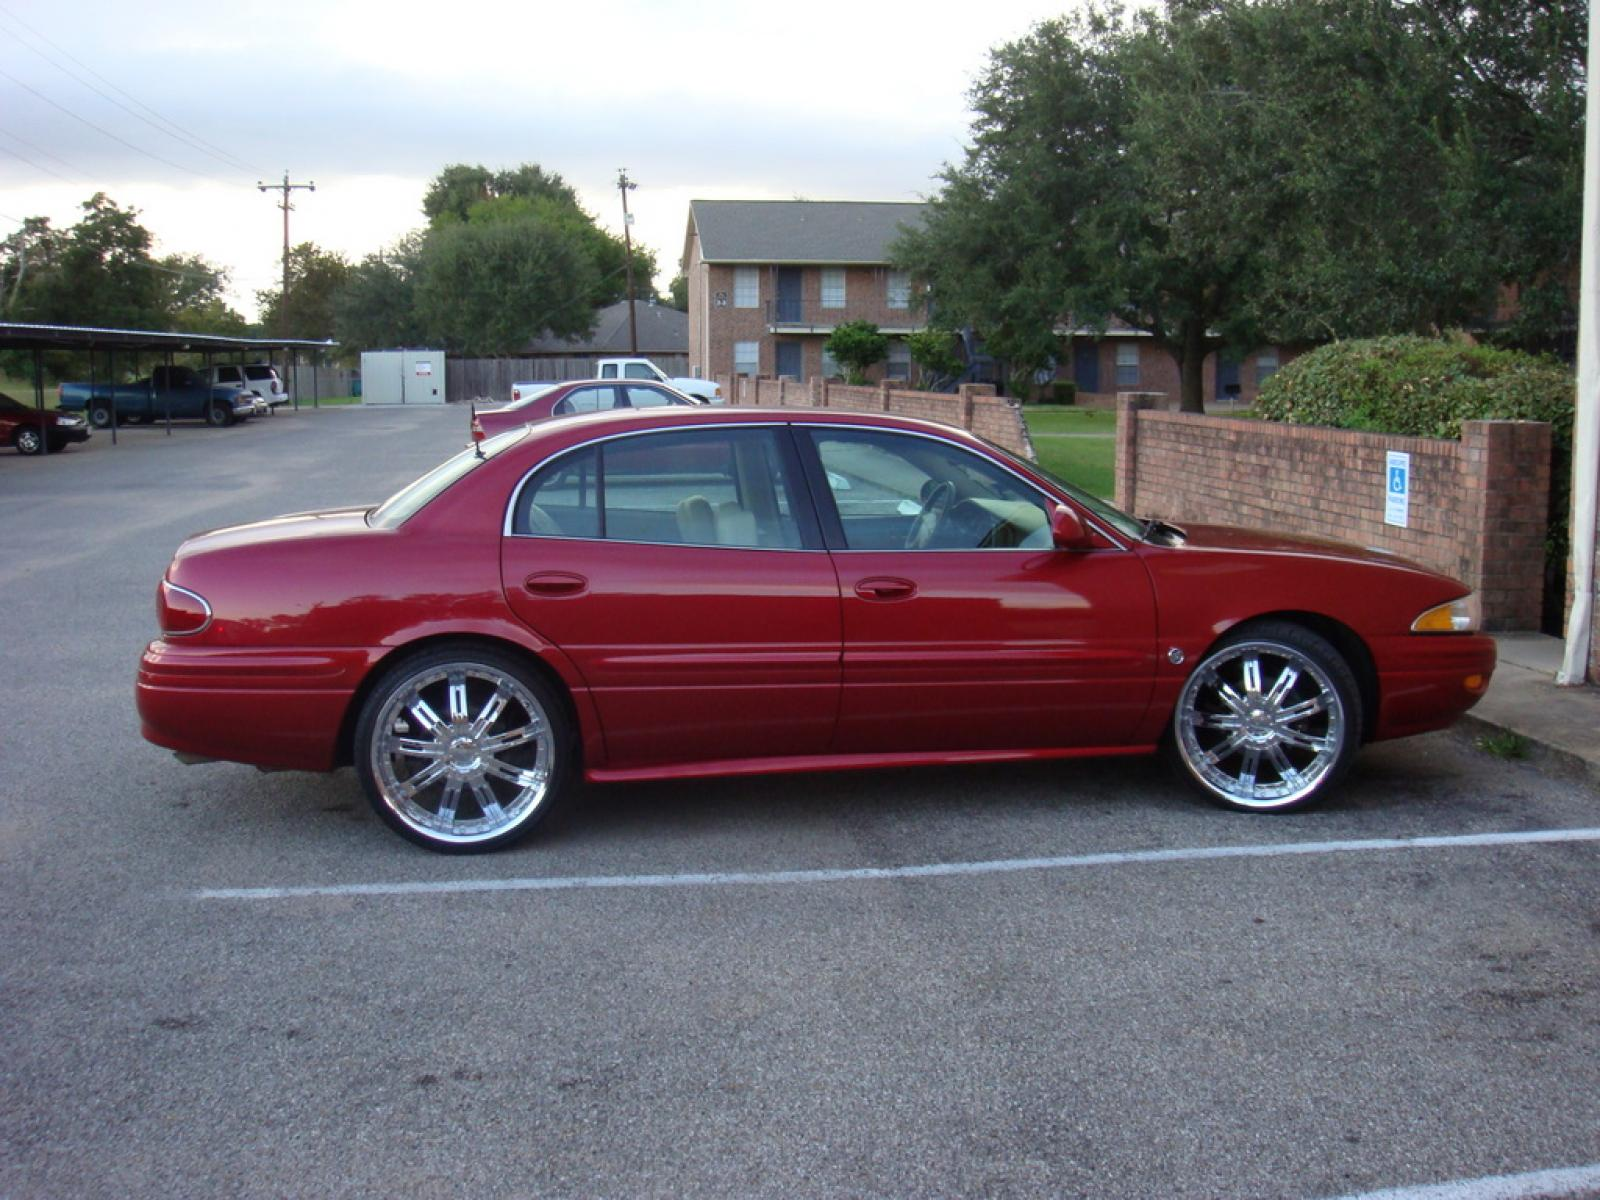 2004 Buick Lesabre Information And Photos Zombiedrive